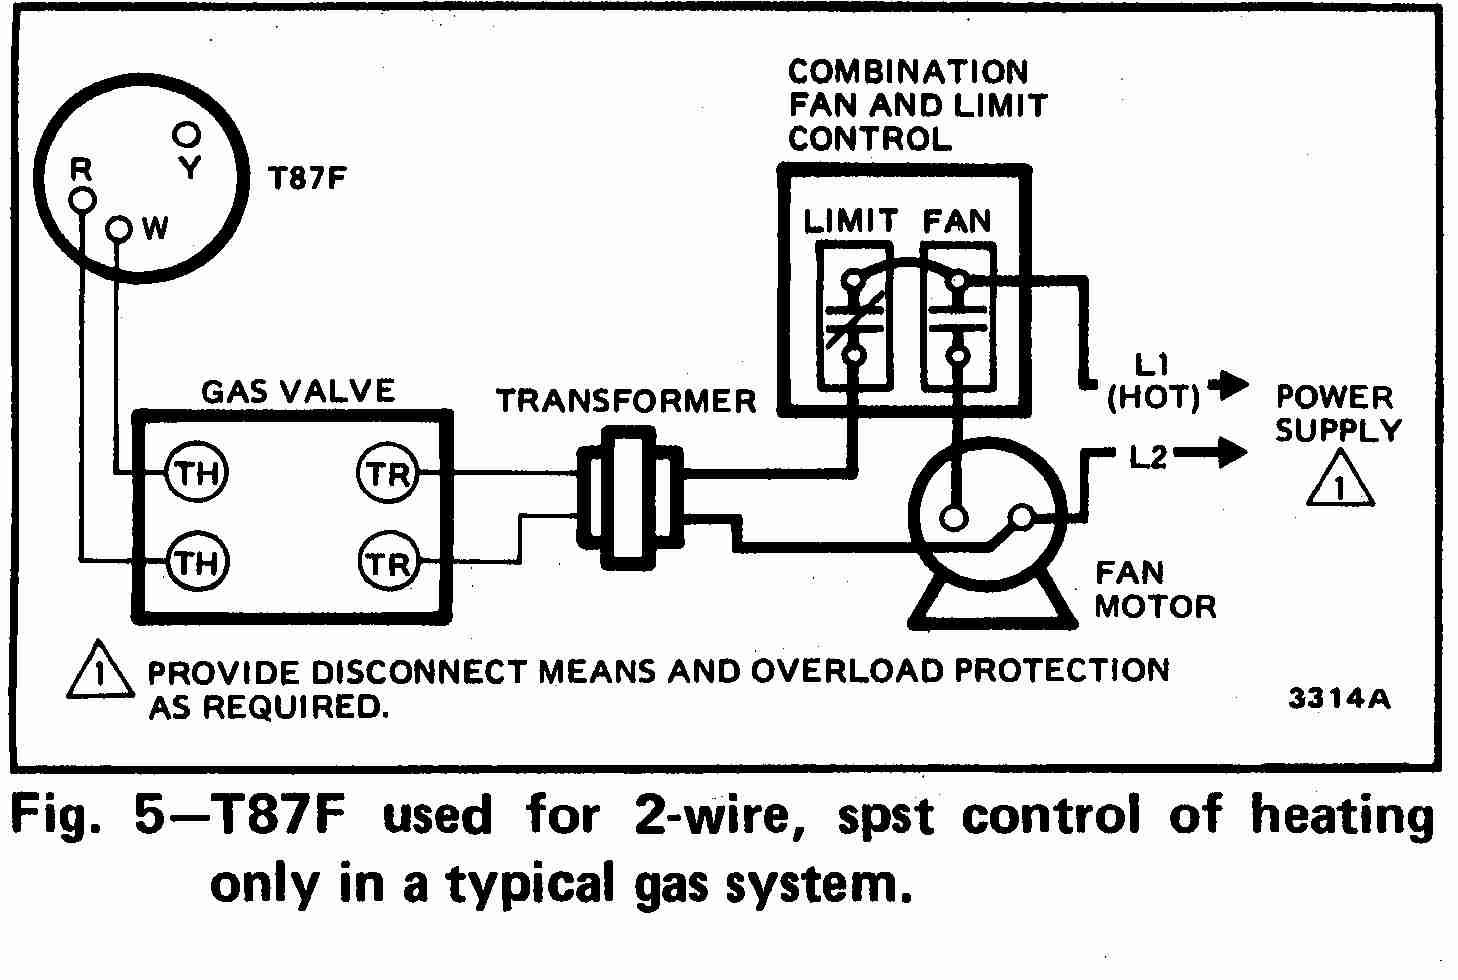 hight resolution of room thermostat wiring diagrams for hvac systems modine heater wiring schematic heater control unit wiring diagram